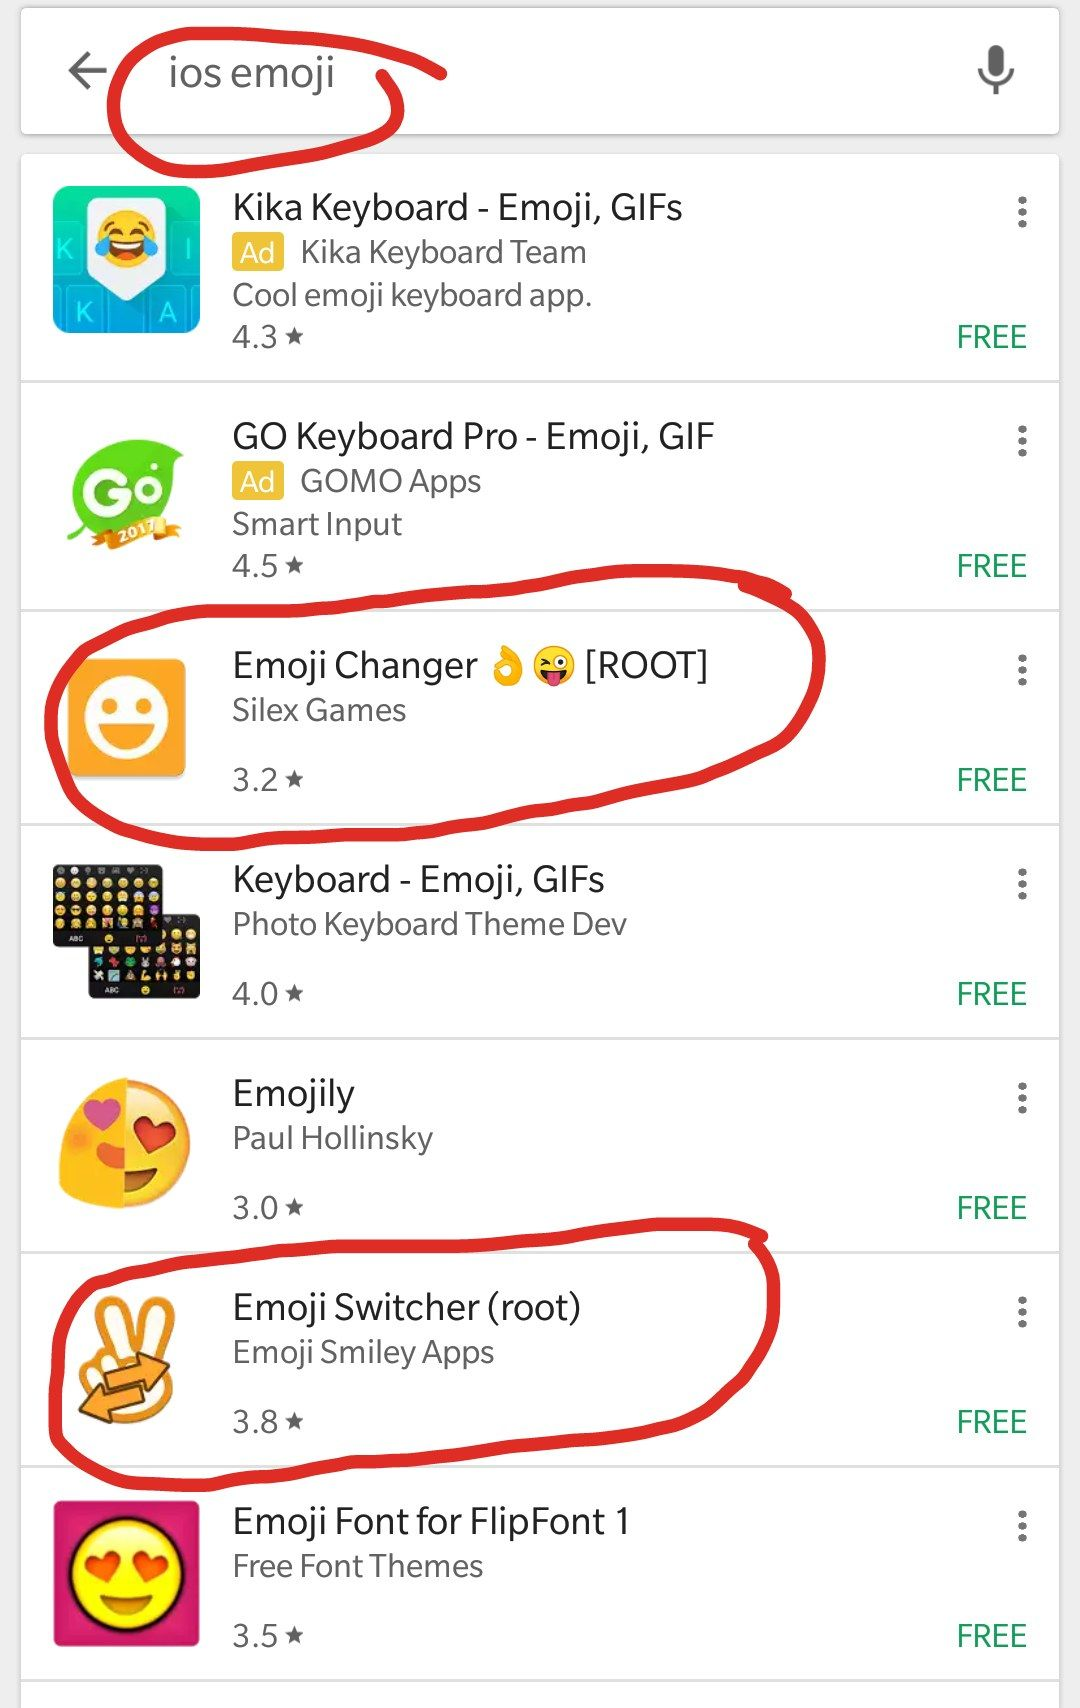 iOS emoji app for android - OnePlus Community